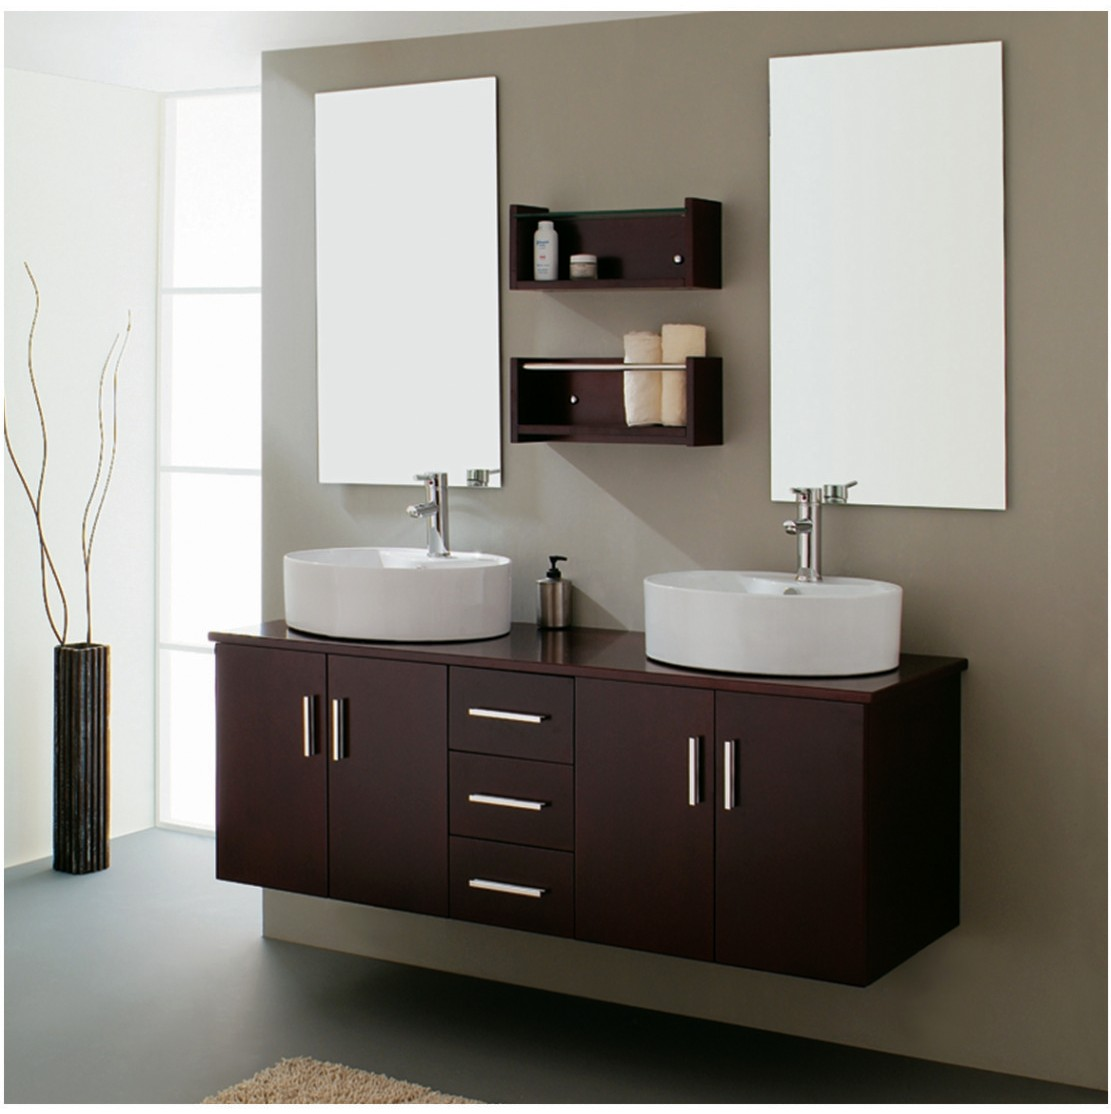 Double sink bathroom decorating ideas 2017 2018 best for Bathroom furniture design ideas